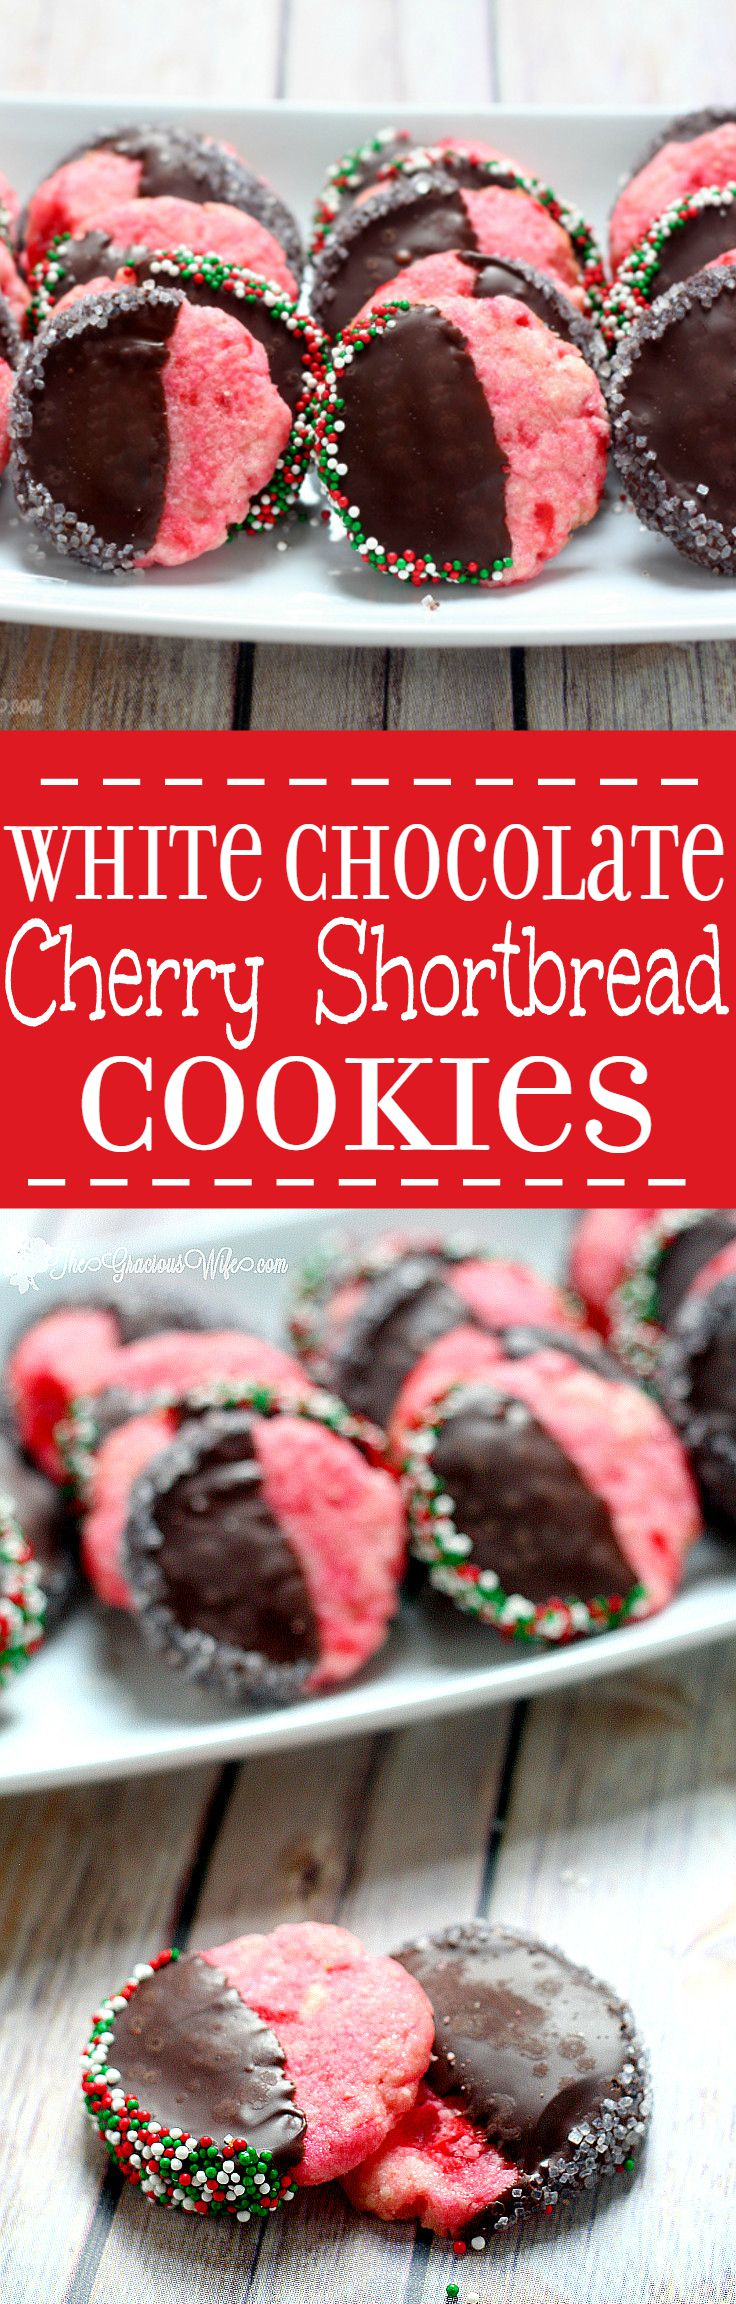 White Chocolate Cherry Shortbread Cookies are a delicious combination ...